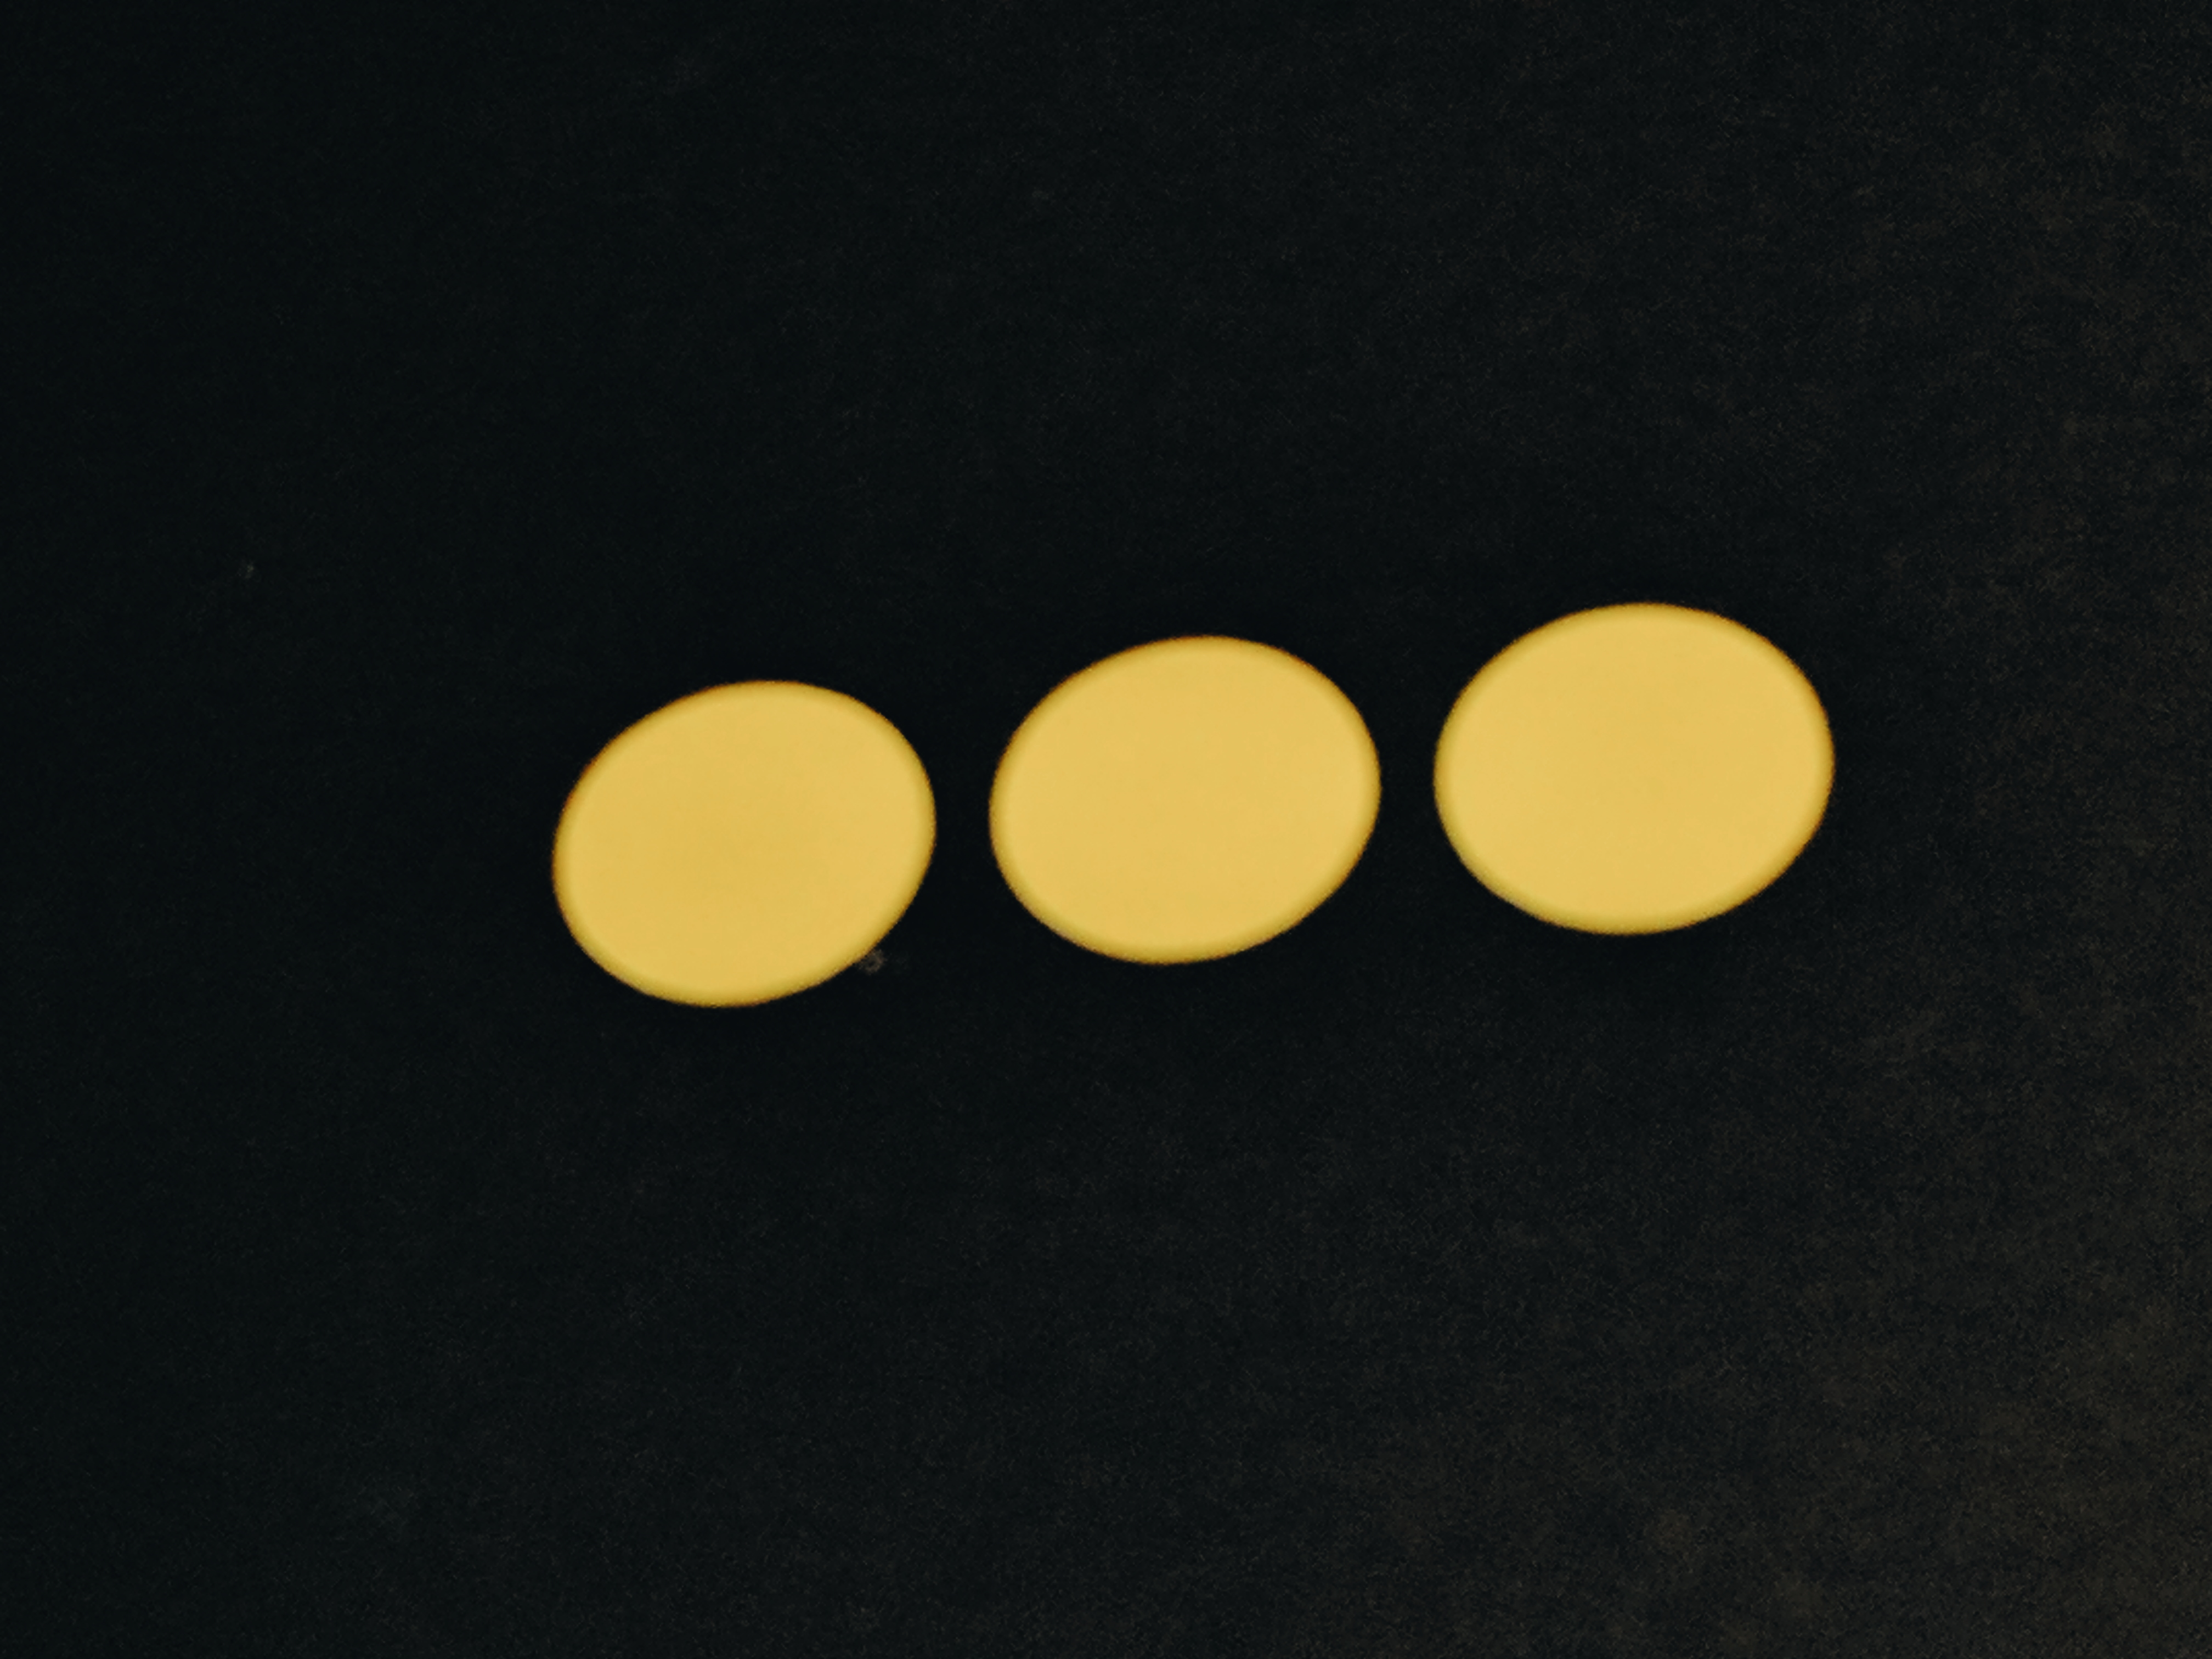 Three yellow Dots on black background